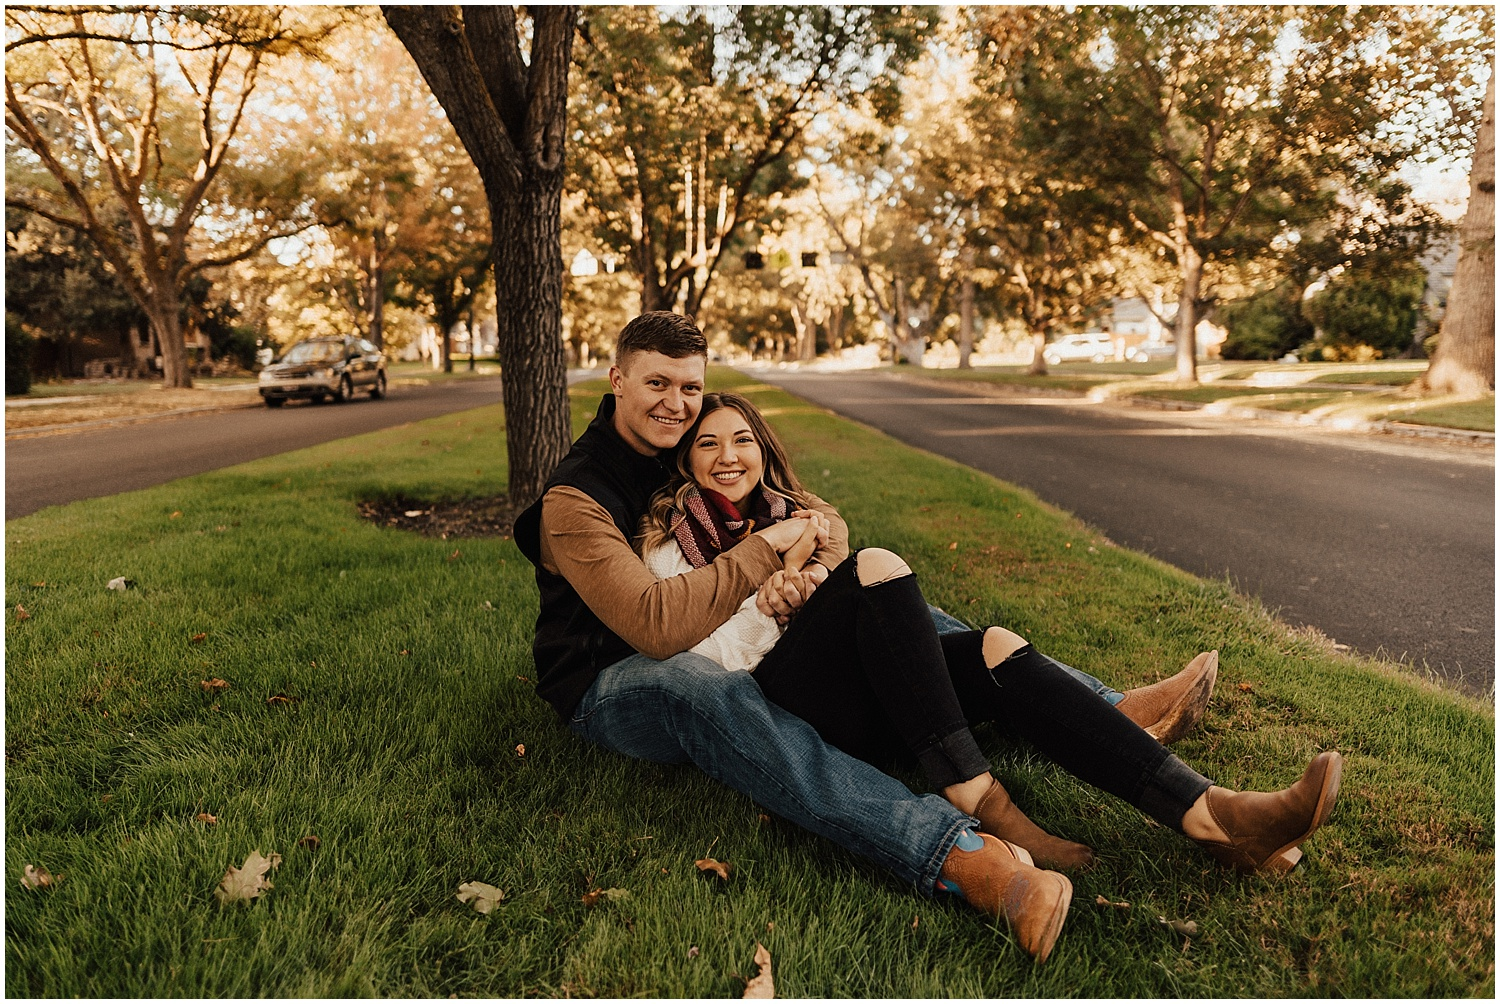 downtown-boise-engagement-session30.jpg